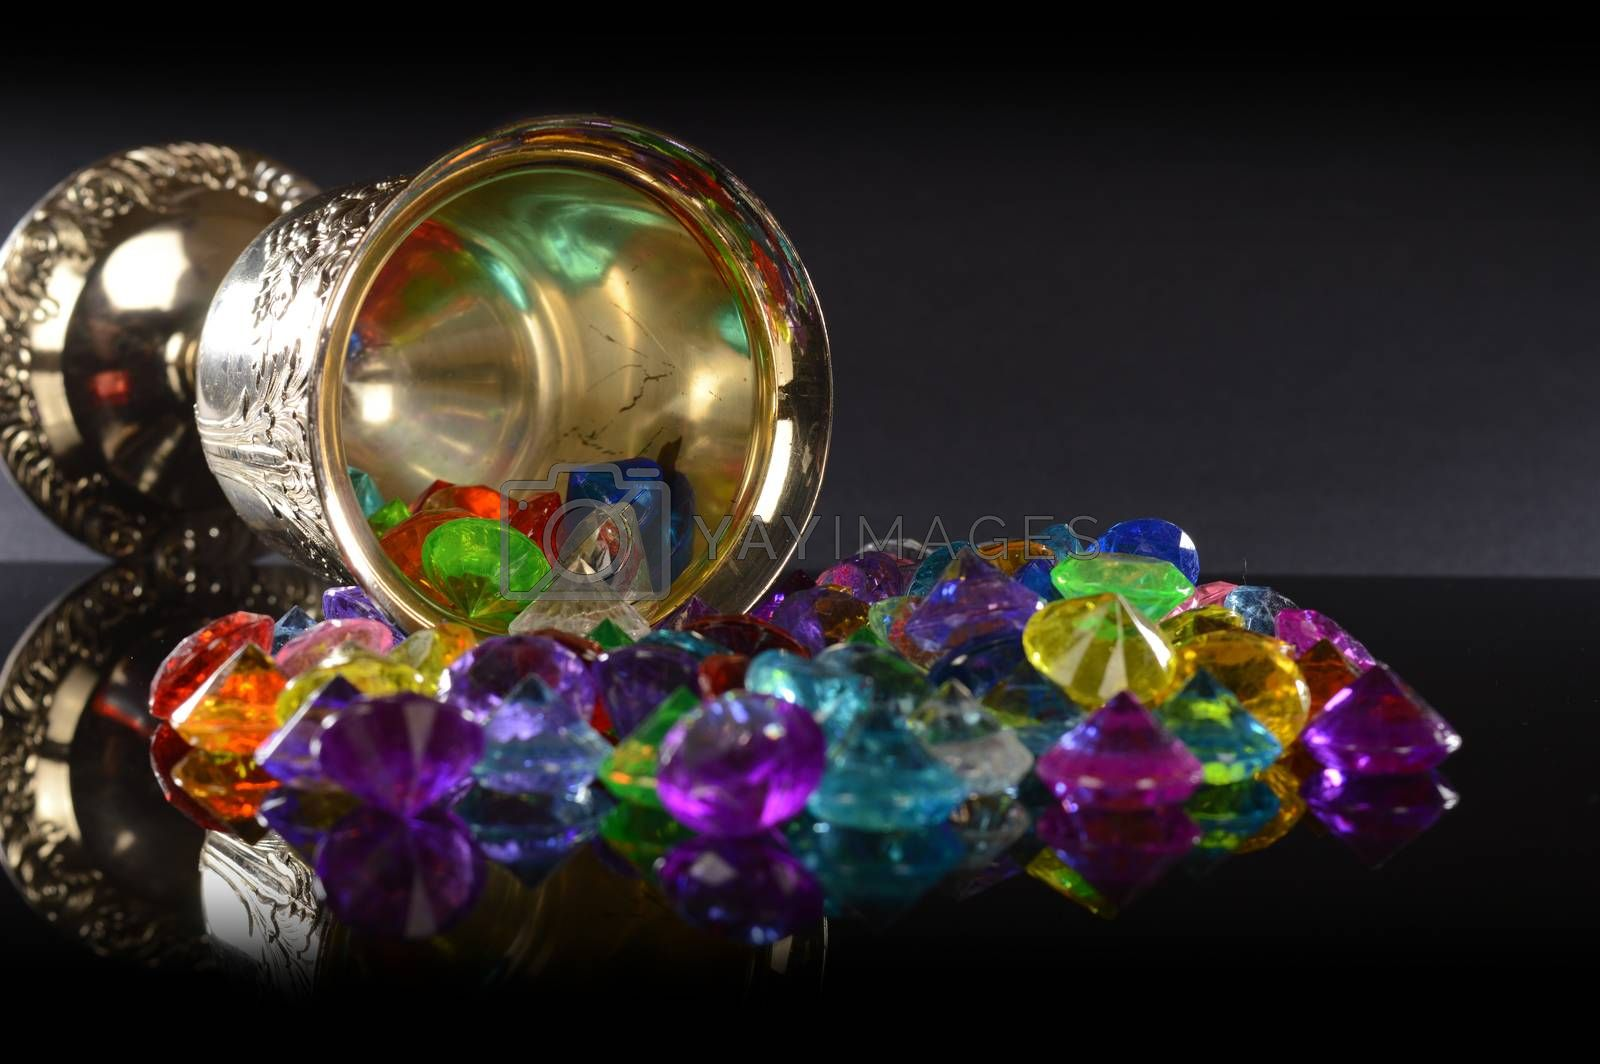 A closeup view of some treasured gemstones and a silver wineglass over a black reflective background.